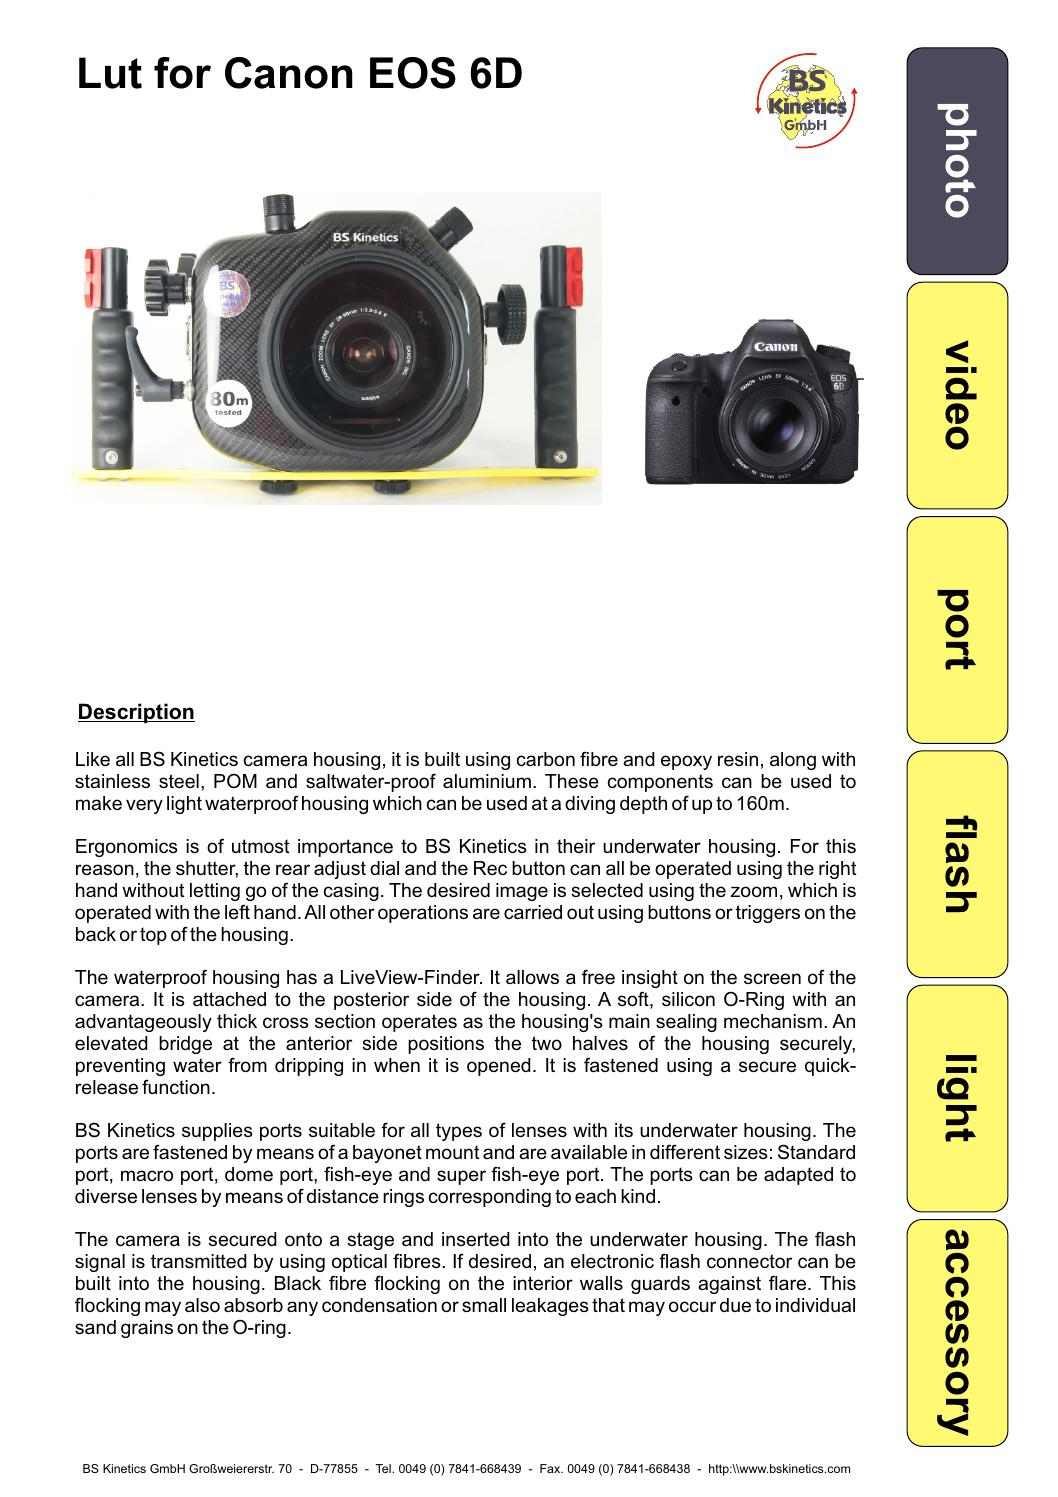 Lut for Canon EOS 6D by BS Kinetics - issuu